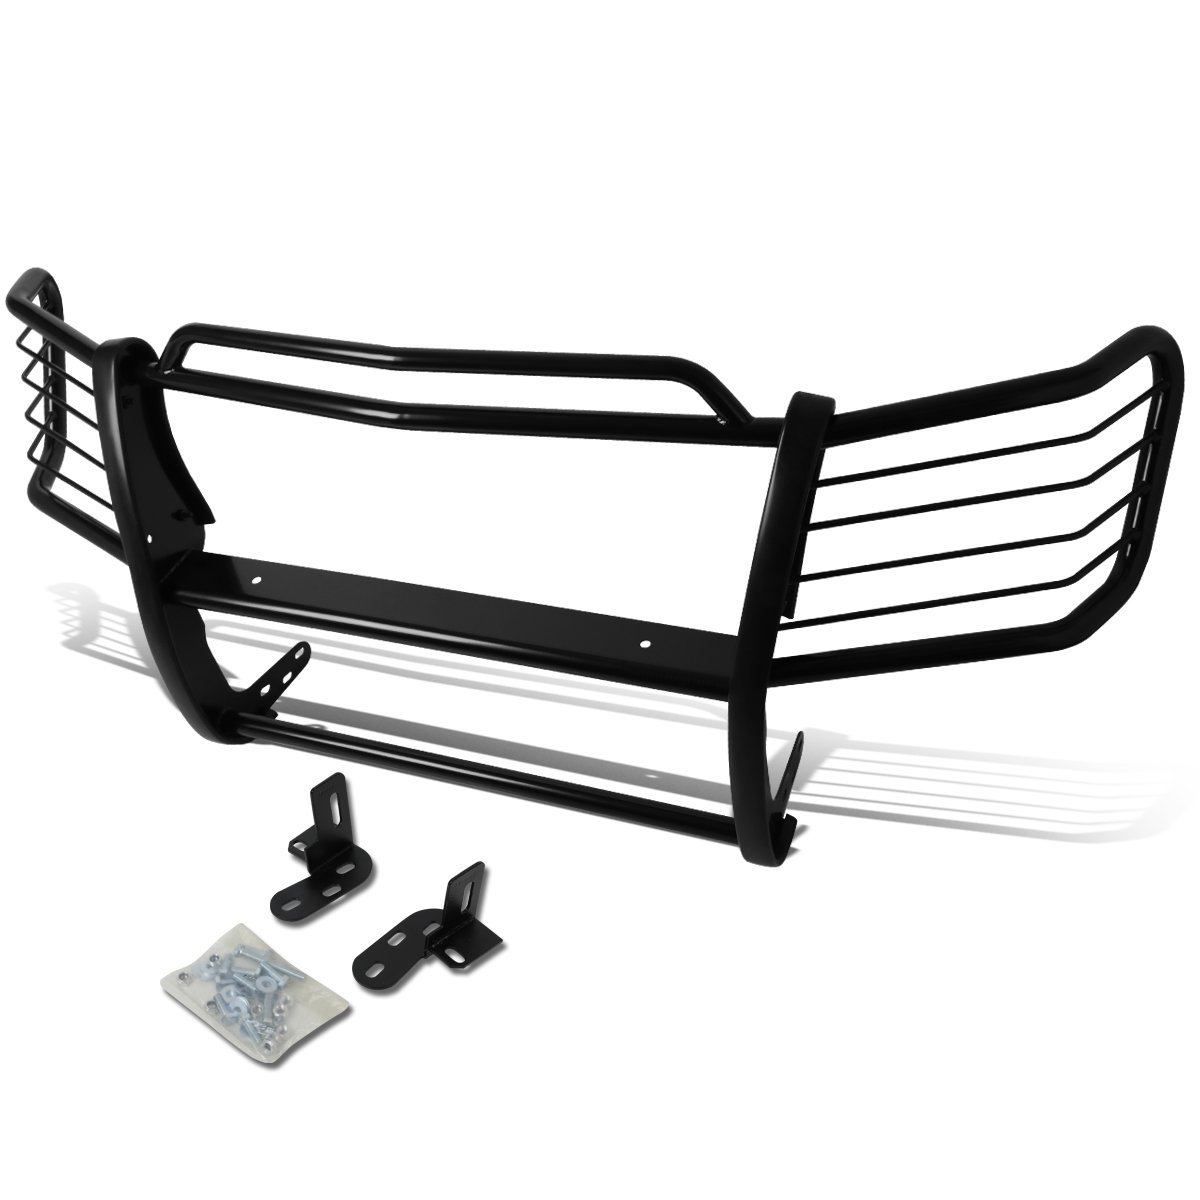 For Chevy Avalanche with Cladding Front Bumper Protector Brush Grille Guard (Black)